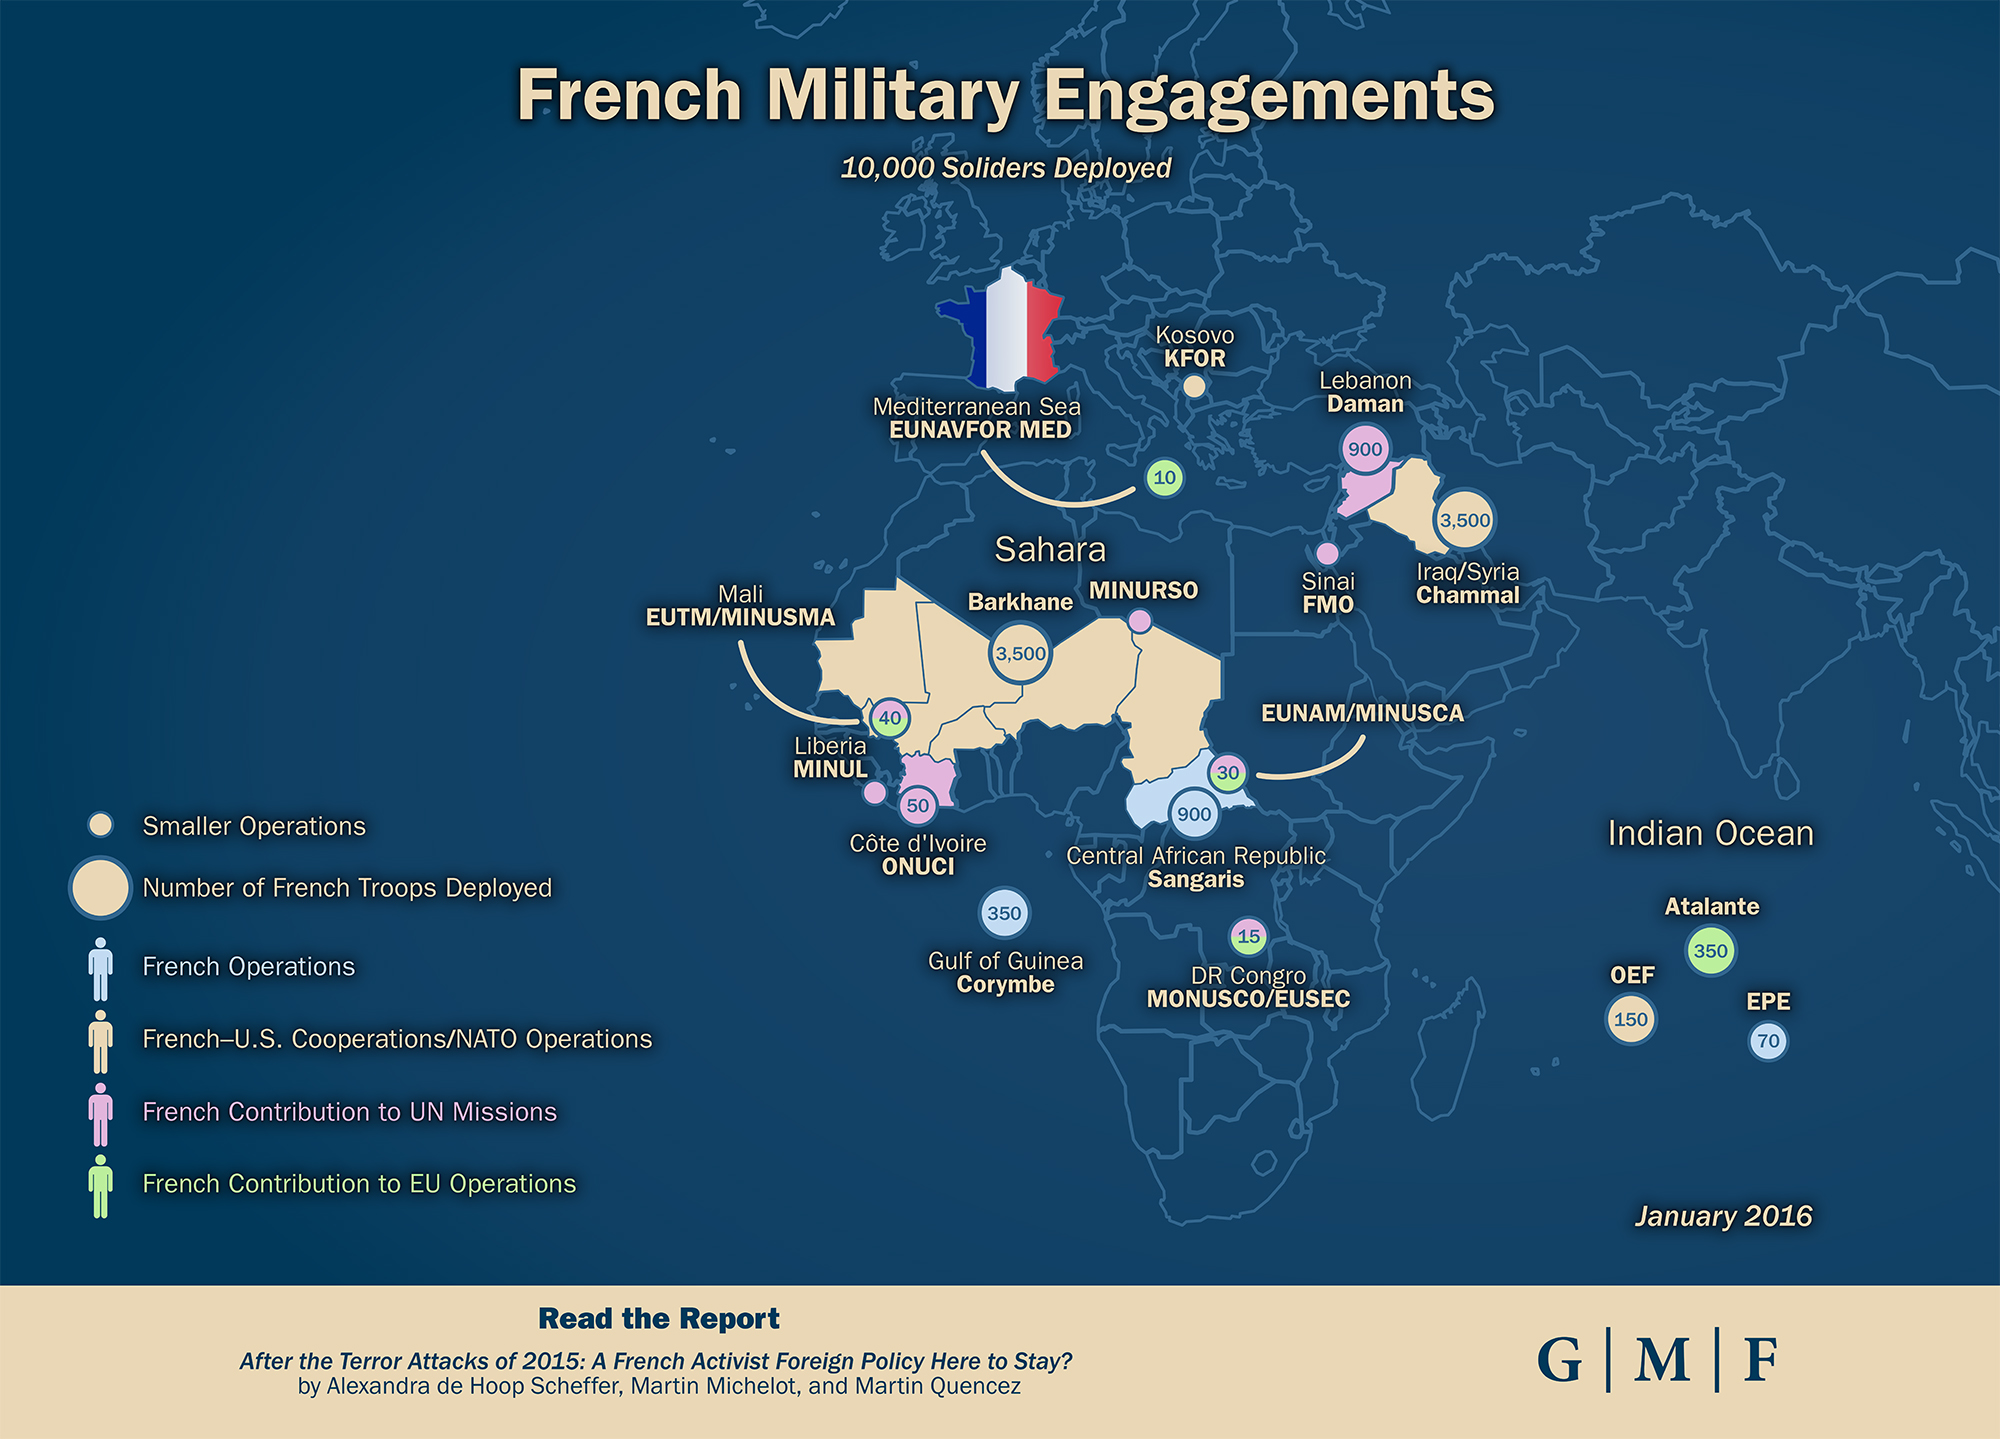 french-engagements.jpg